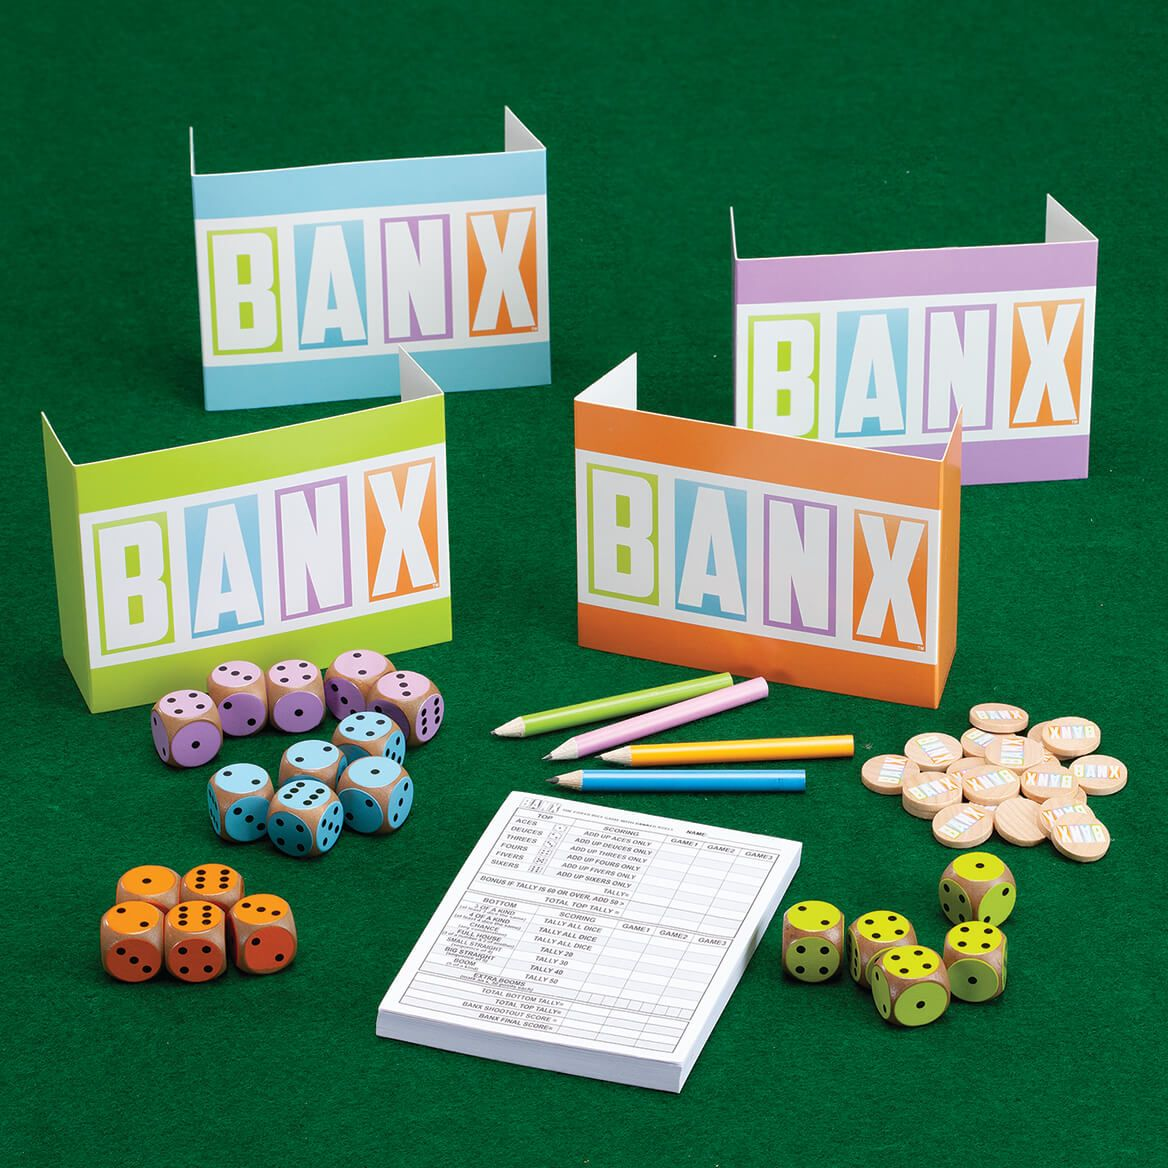 BANX The Poker Dice Game-372526